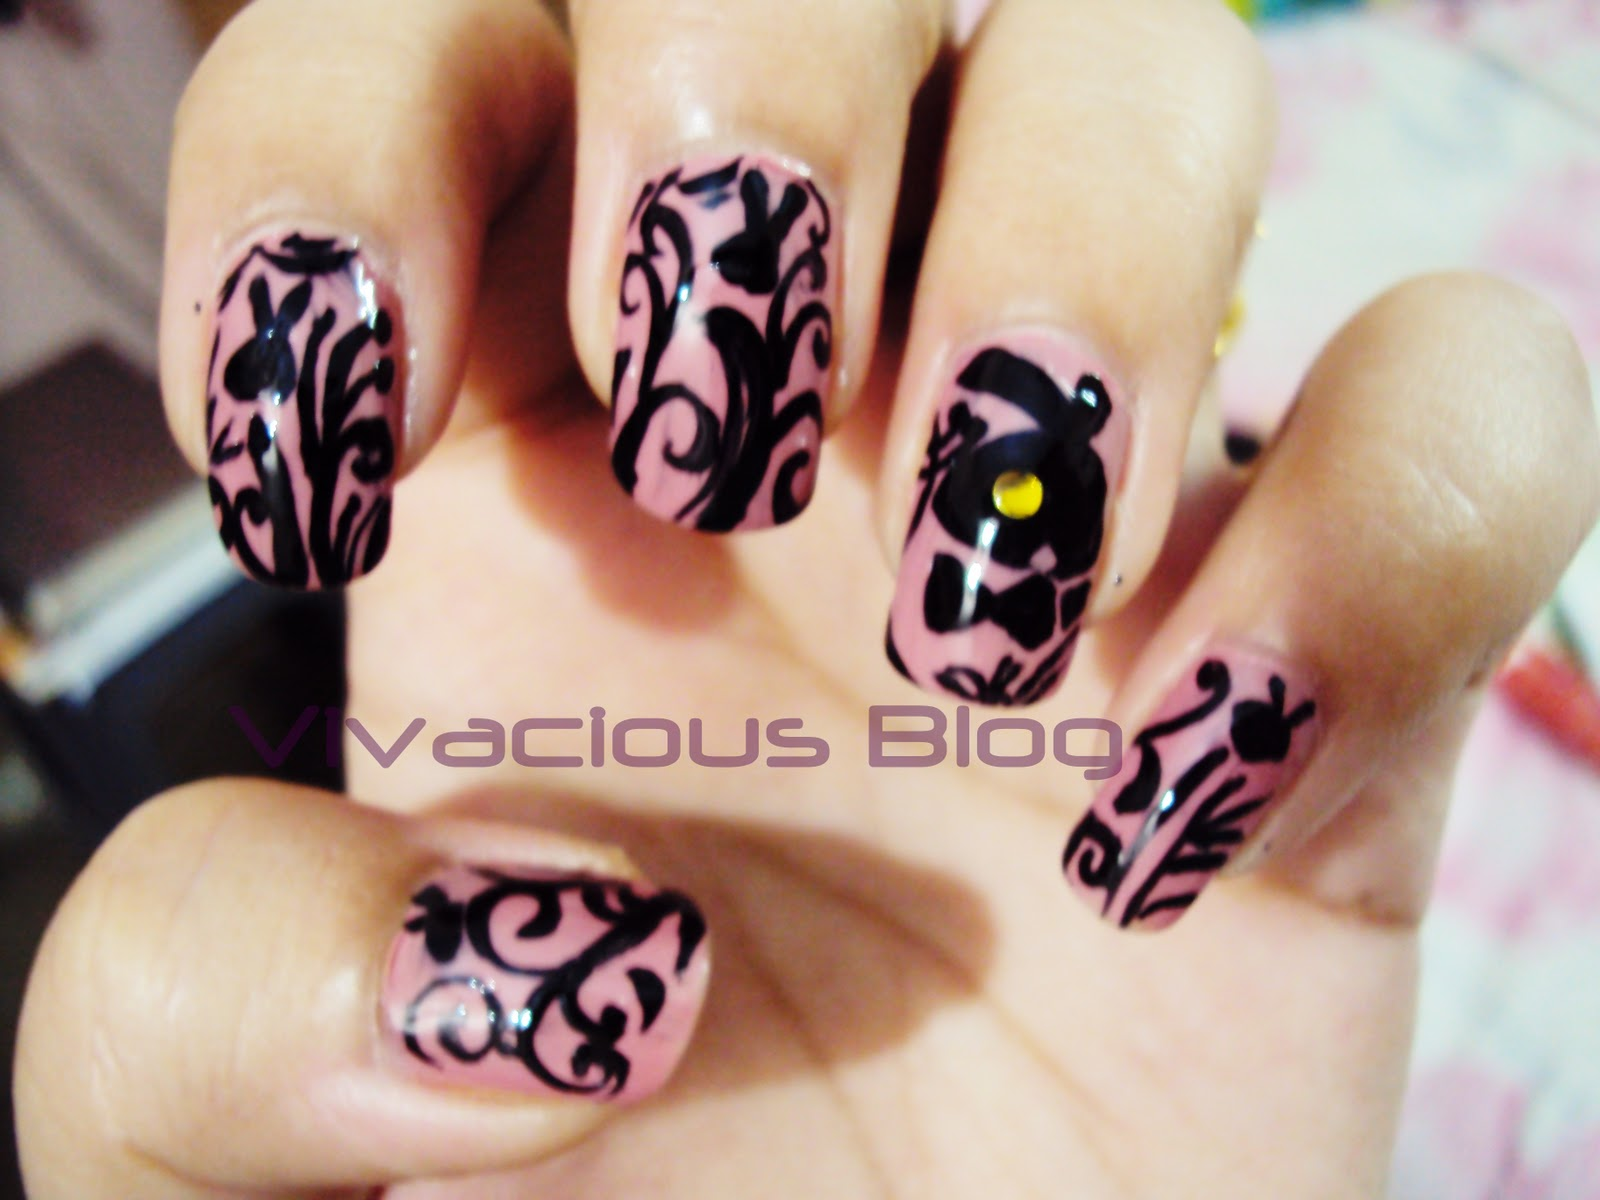 Vivacious Blog: Playboy Bunny Inspired Nail Art